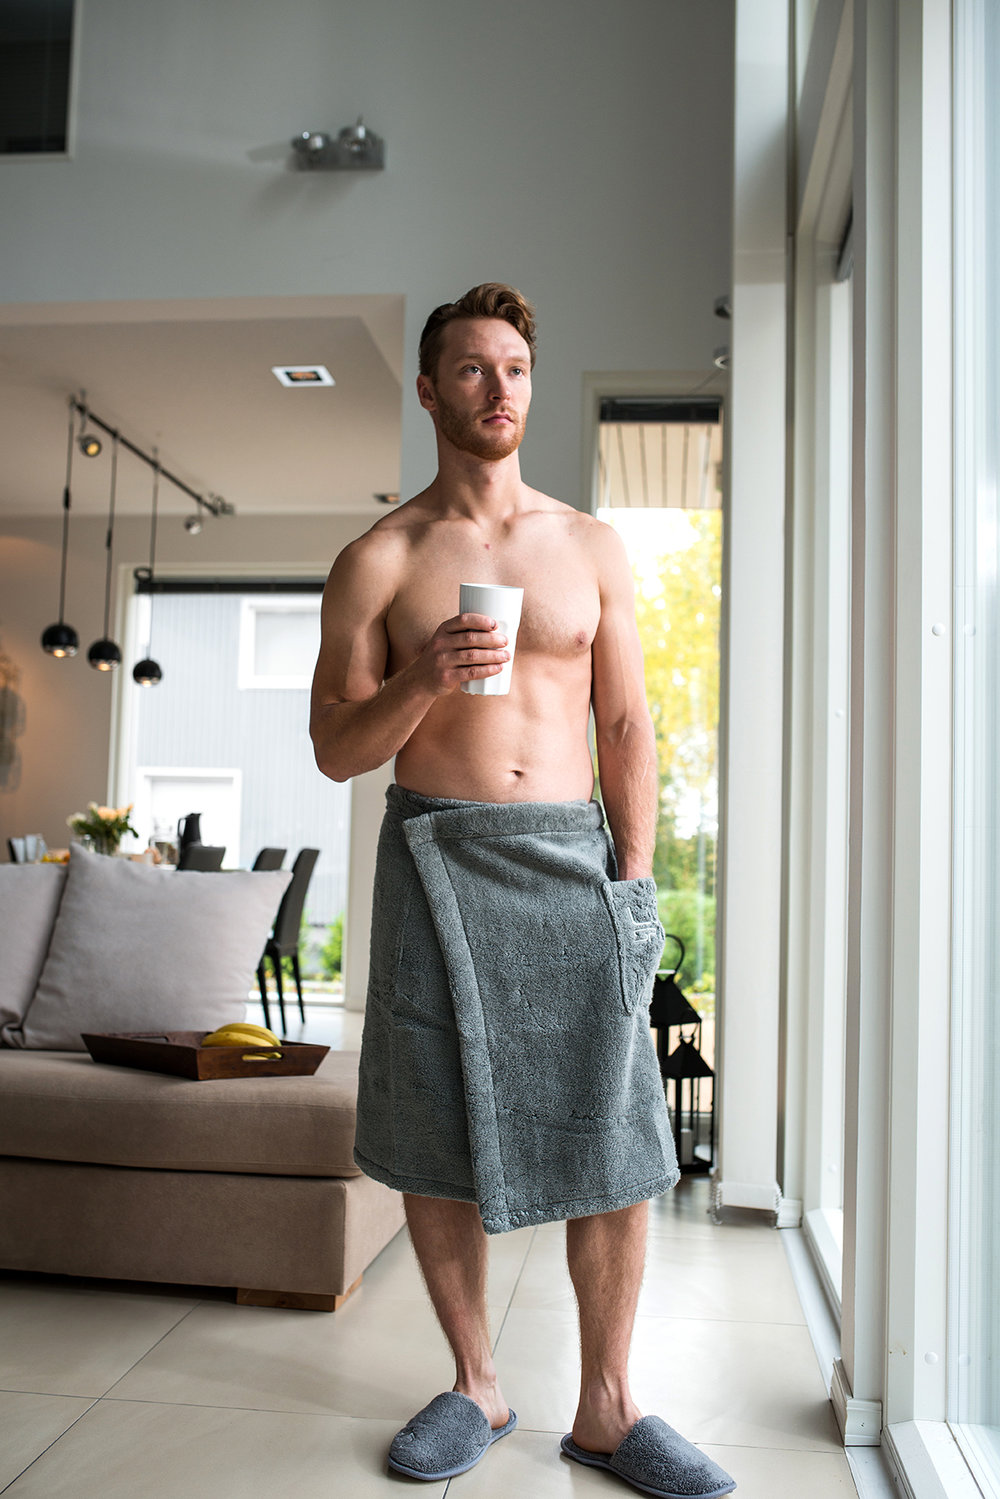 Wrap Towel Men Granite.jpg